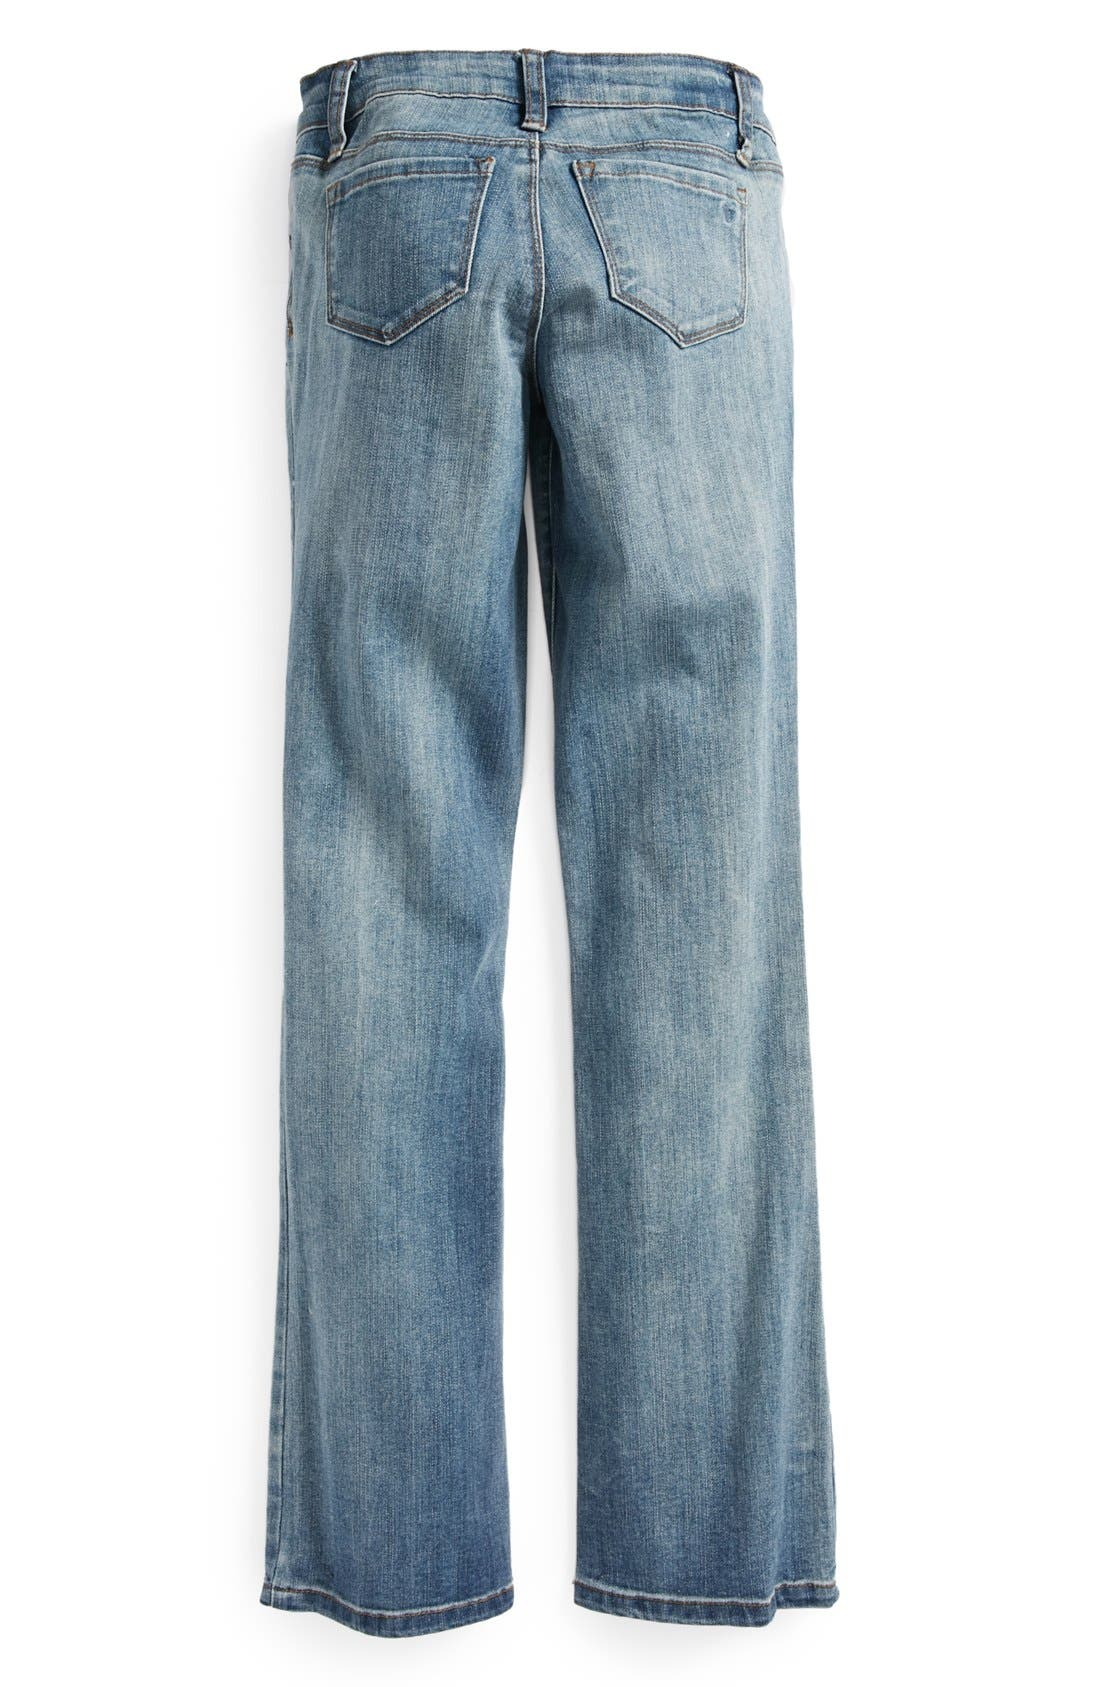 Main Image - Tractr Bootcut Jeans (Big Girls)